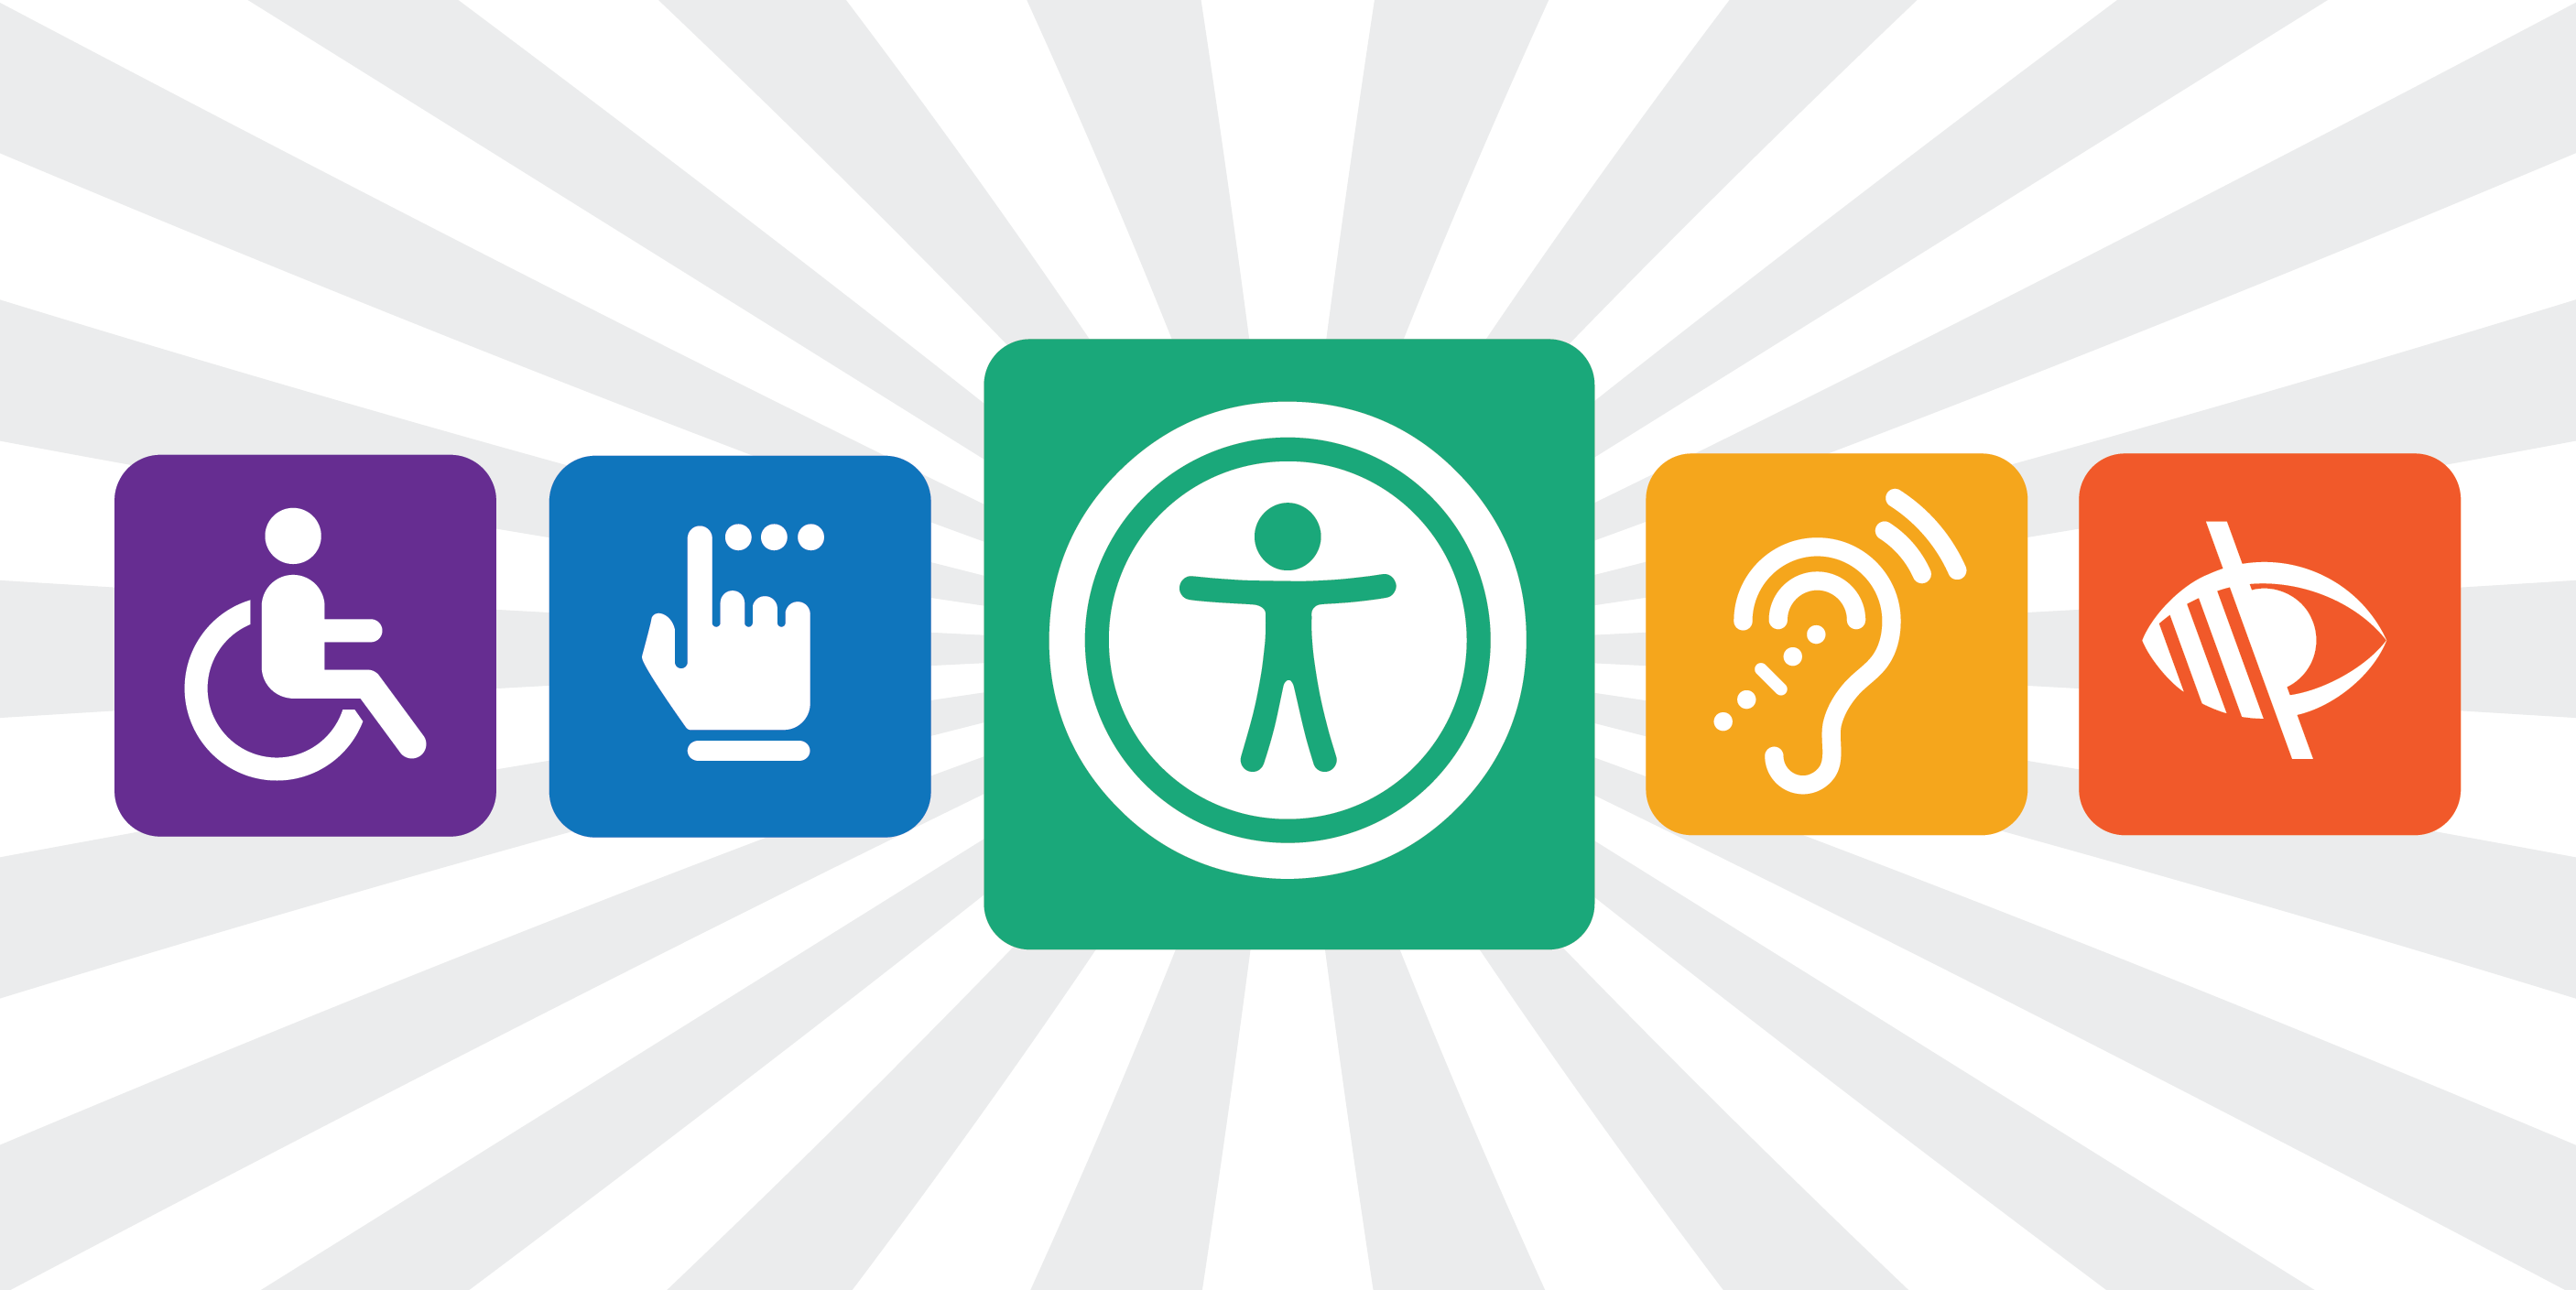 Collage of icons representing web accessibility.